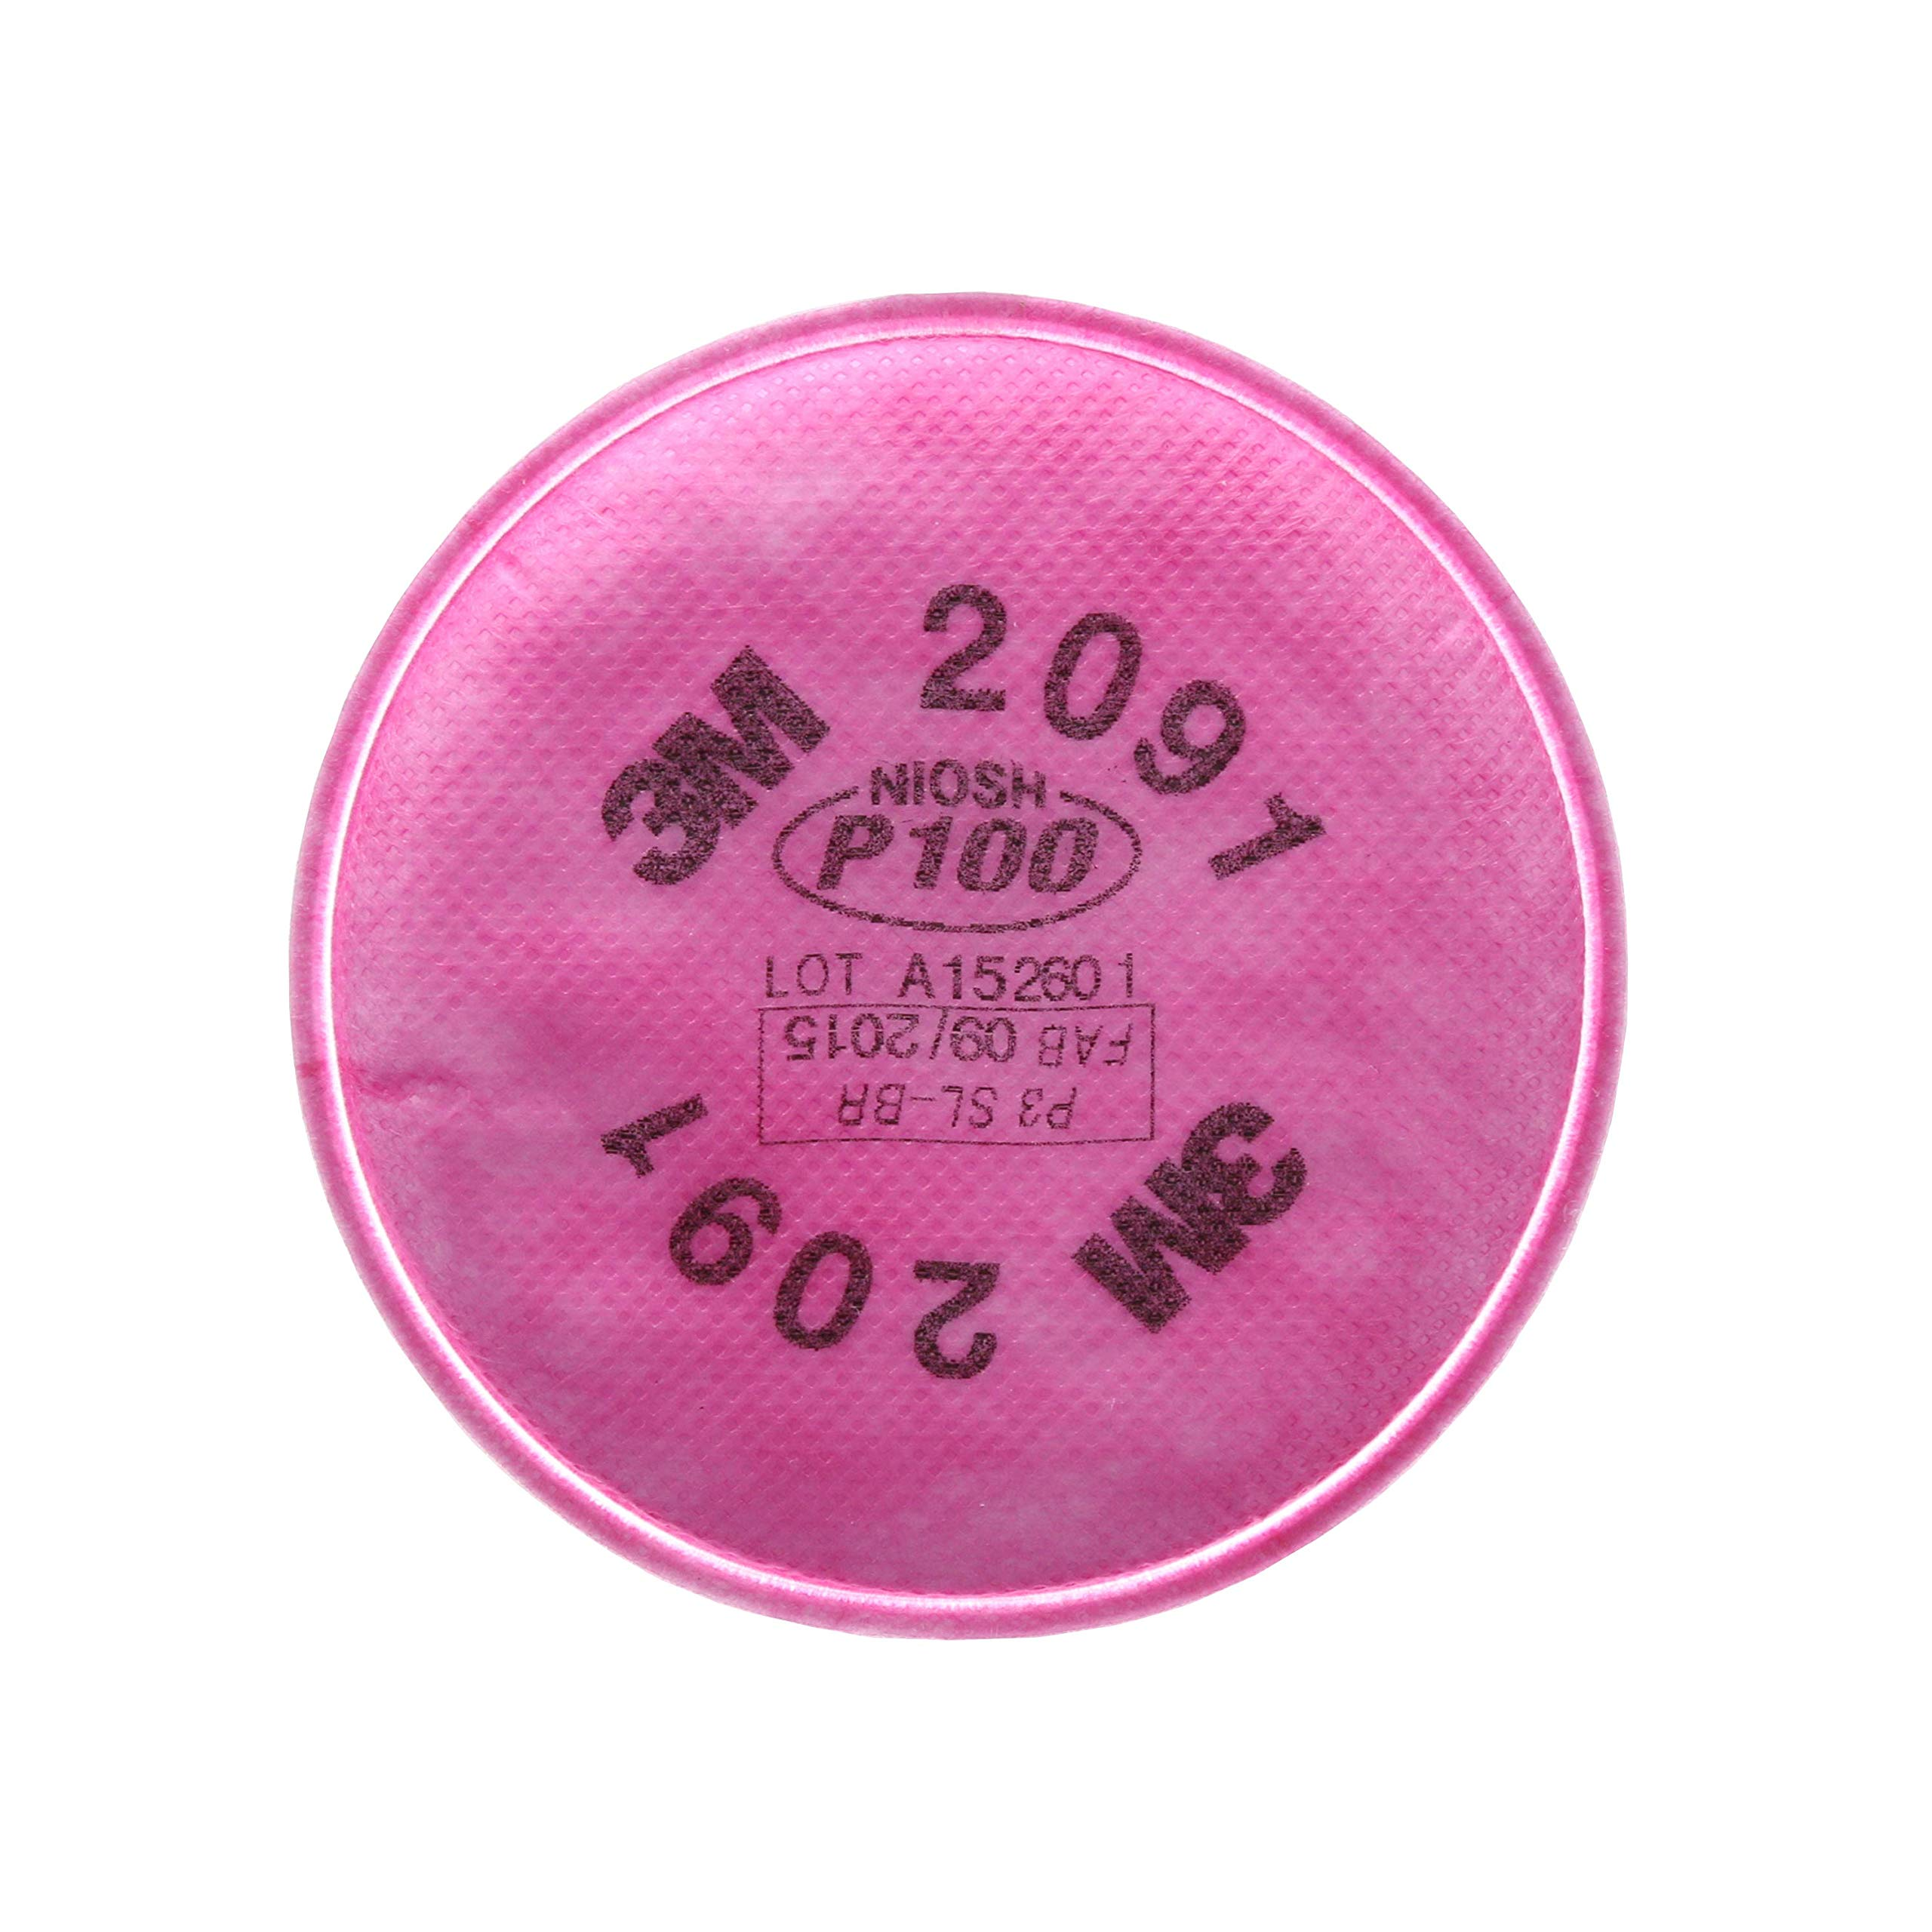 3M Particulate Filter 2091/07000(AAD), P100 Respiratory Protection, 50 Pairs by 3M Personal Protective Equipment